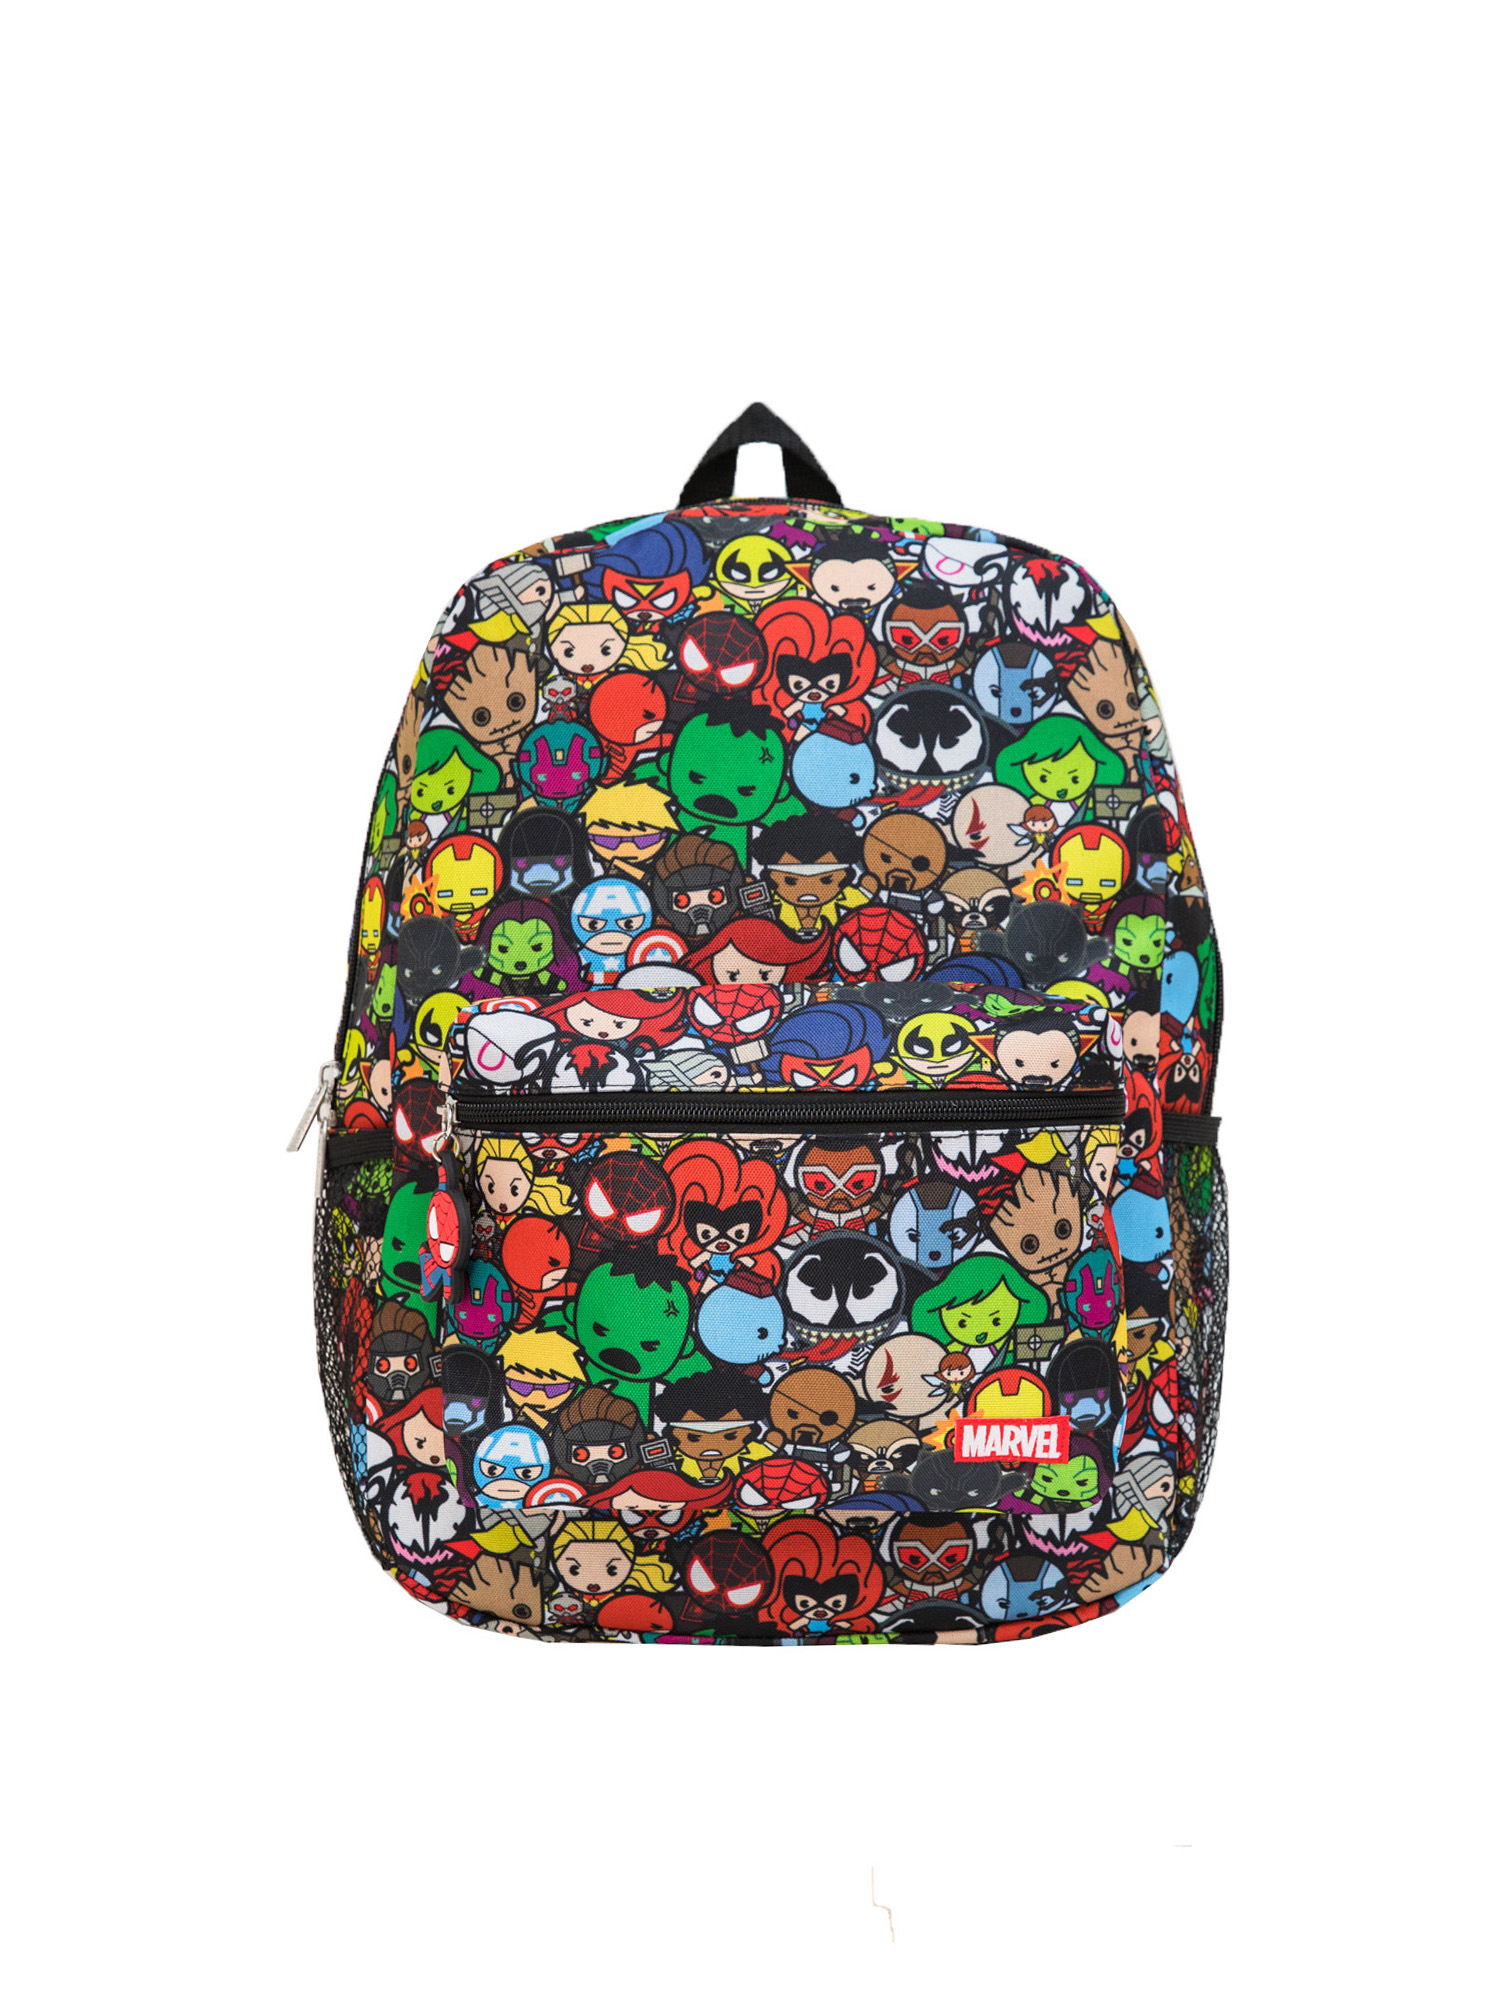 ea6e2a7bdc Marvel - MARVEL KAWAII 16 INCH BACKPACK - Walmart.com